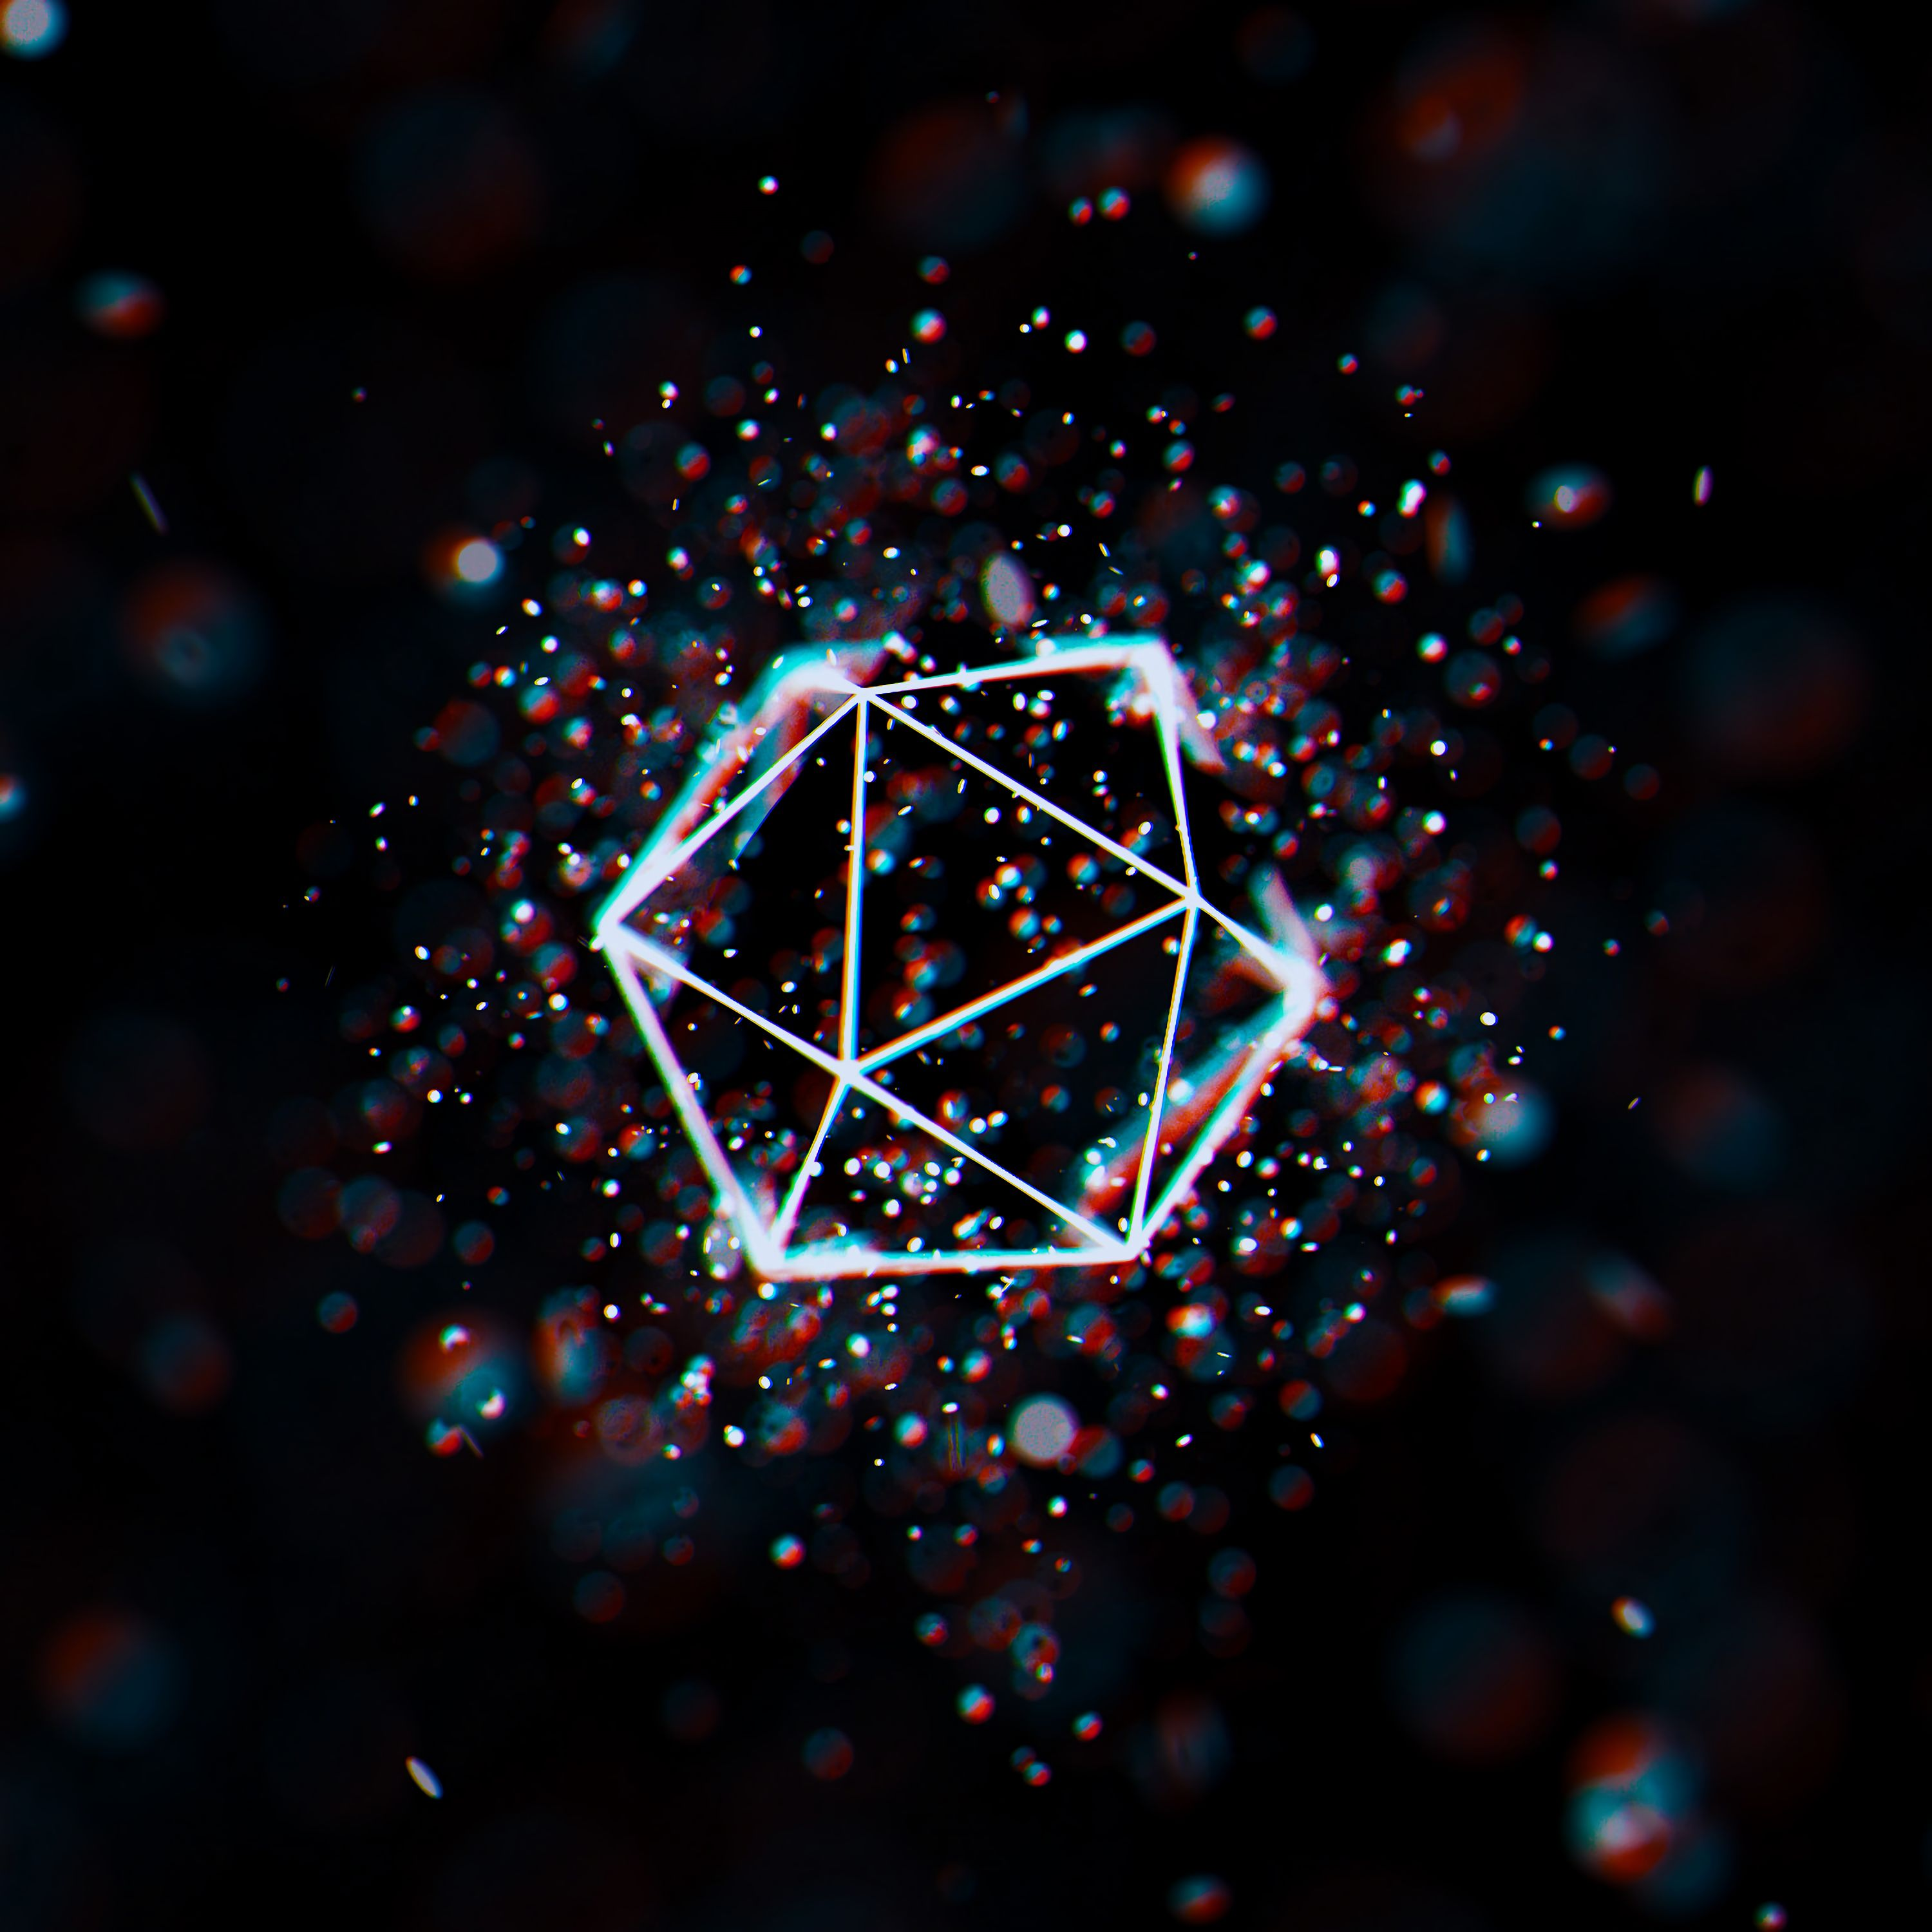 116661 download wallpaper Abstract, Glare, Grid, Space, Geometric, Polygon screensavers and pictures for free